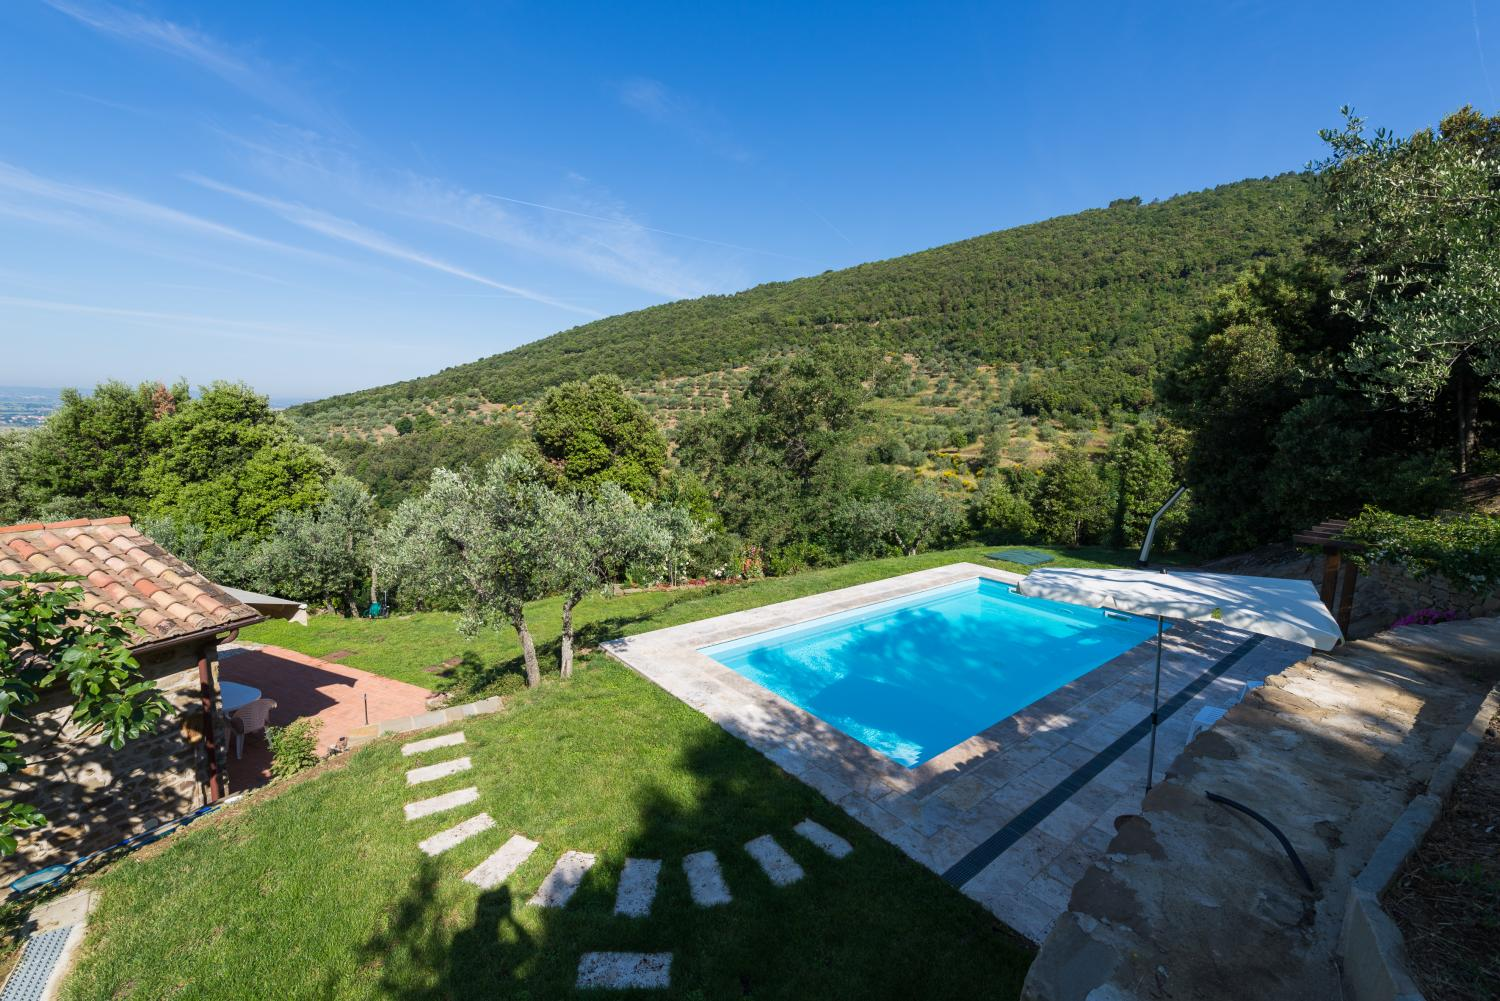 Cortona villa with pool